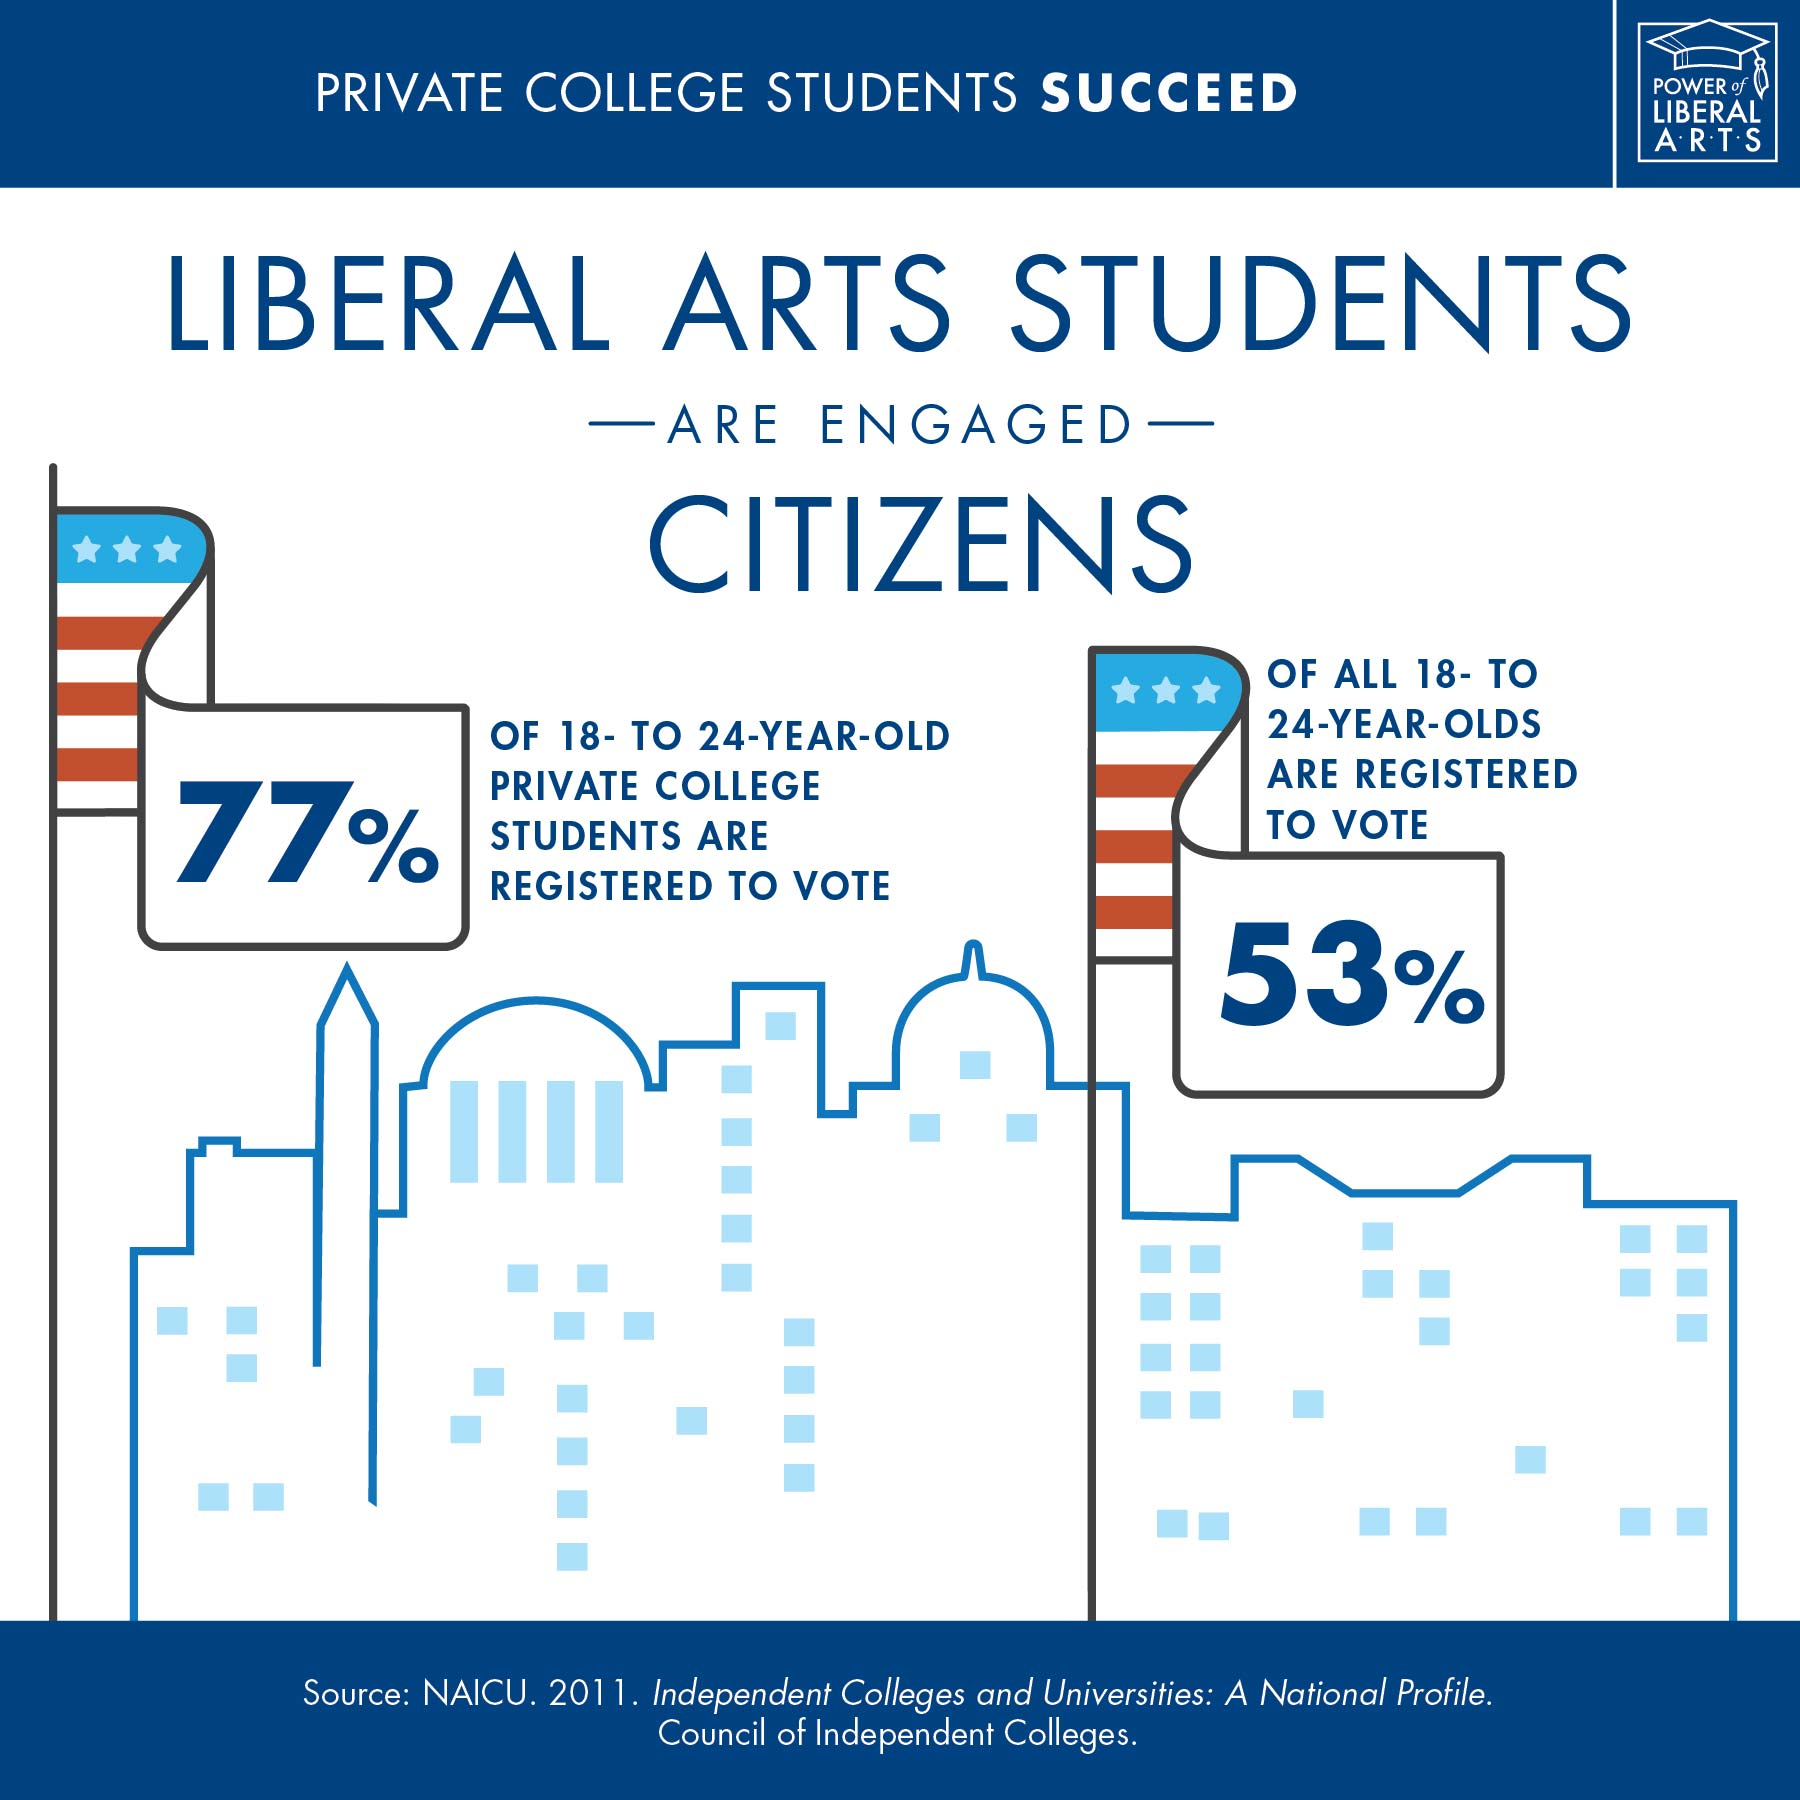 Infographic: Liberal arts students are engaged citizens